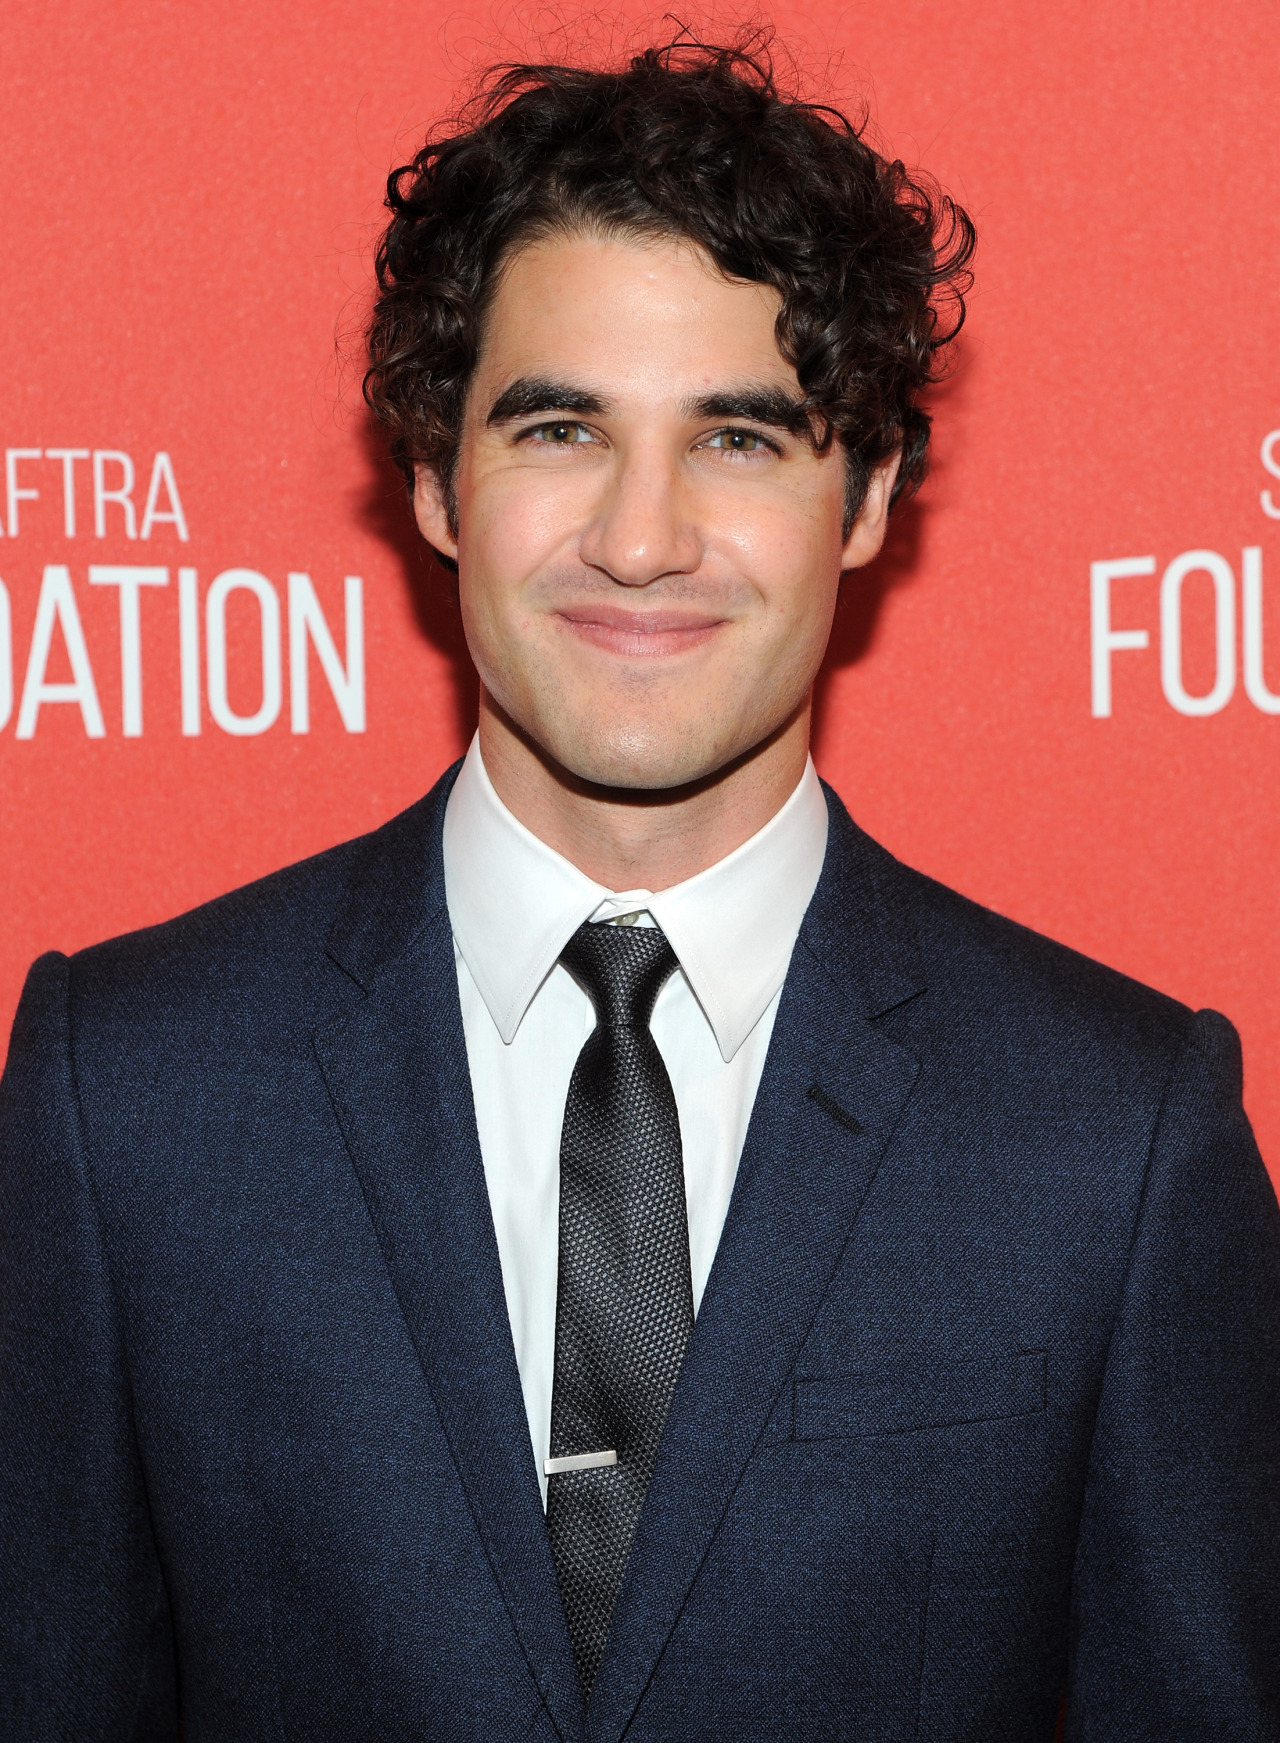 tourlife - Darren's Chartitable Work for 2015 Tumblr_nxdmvwkBvs1r4gxc3o2_1280